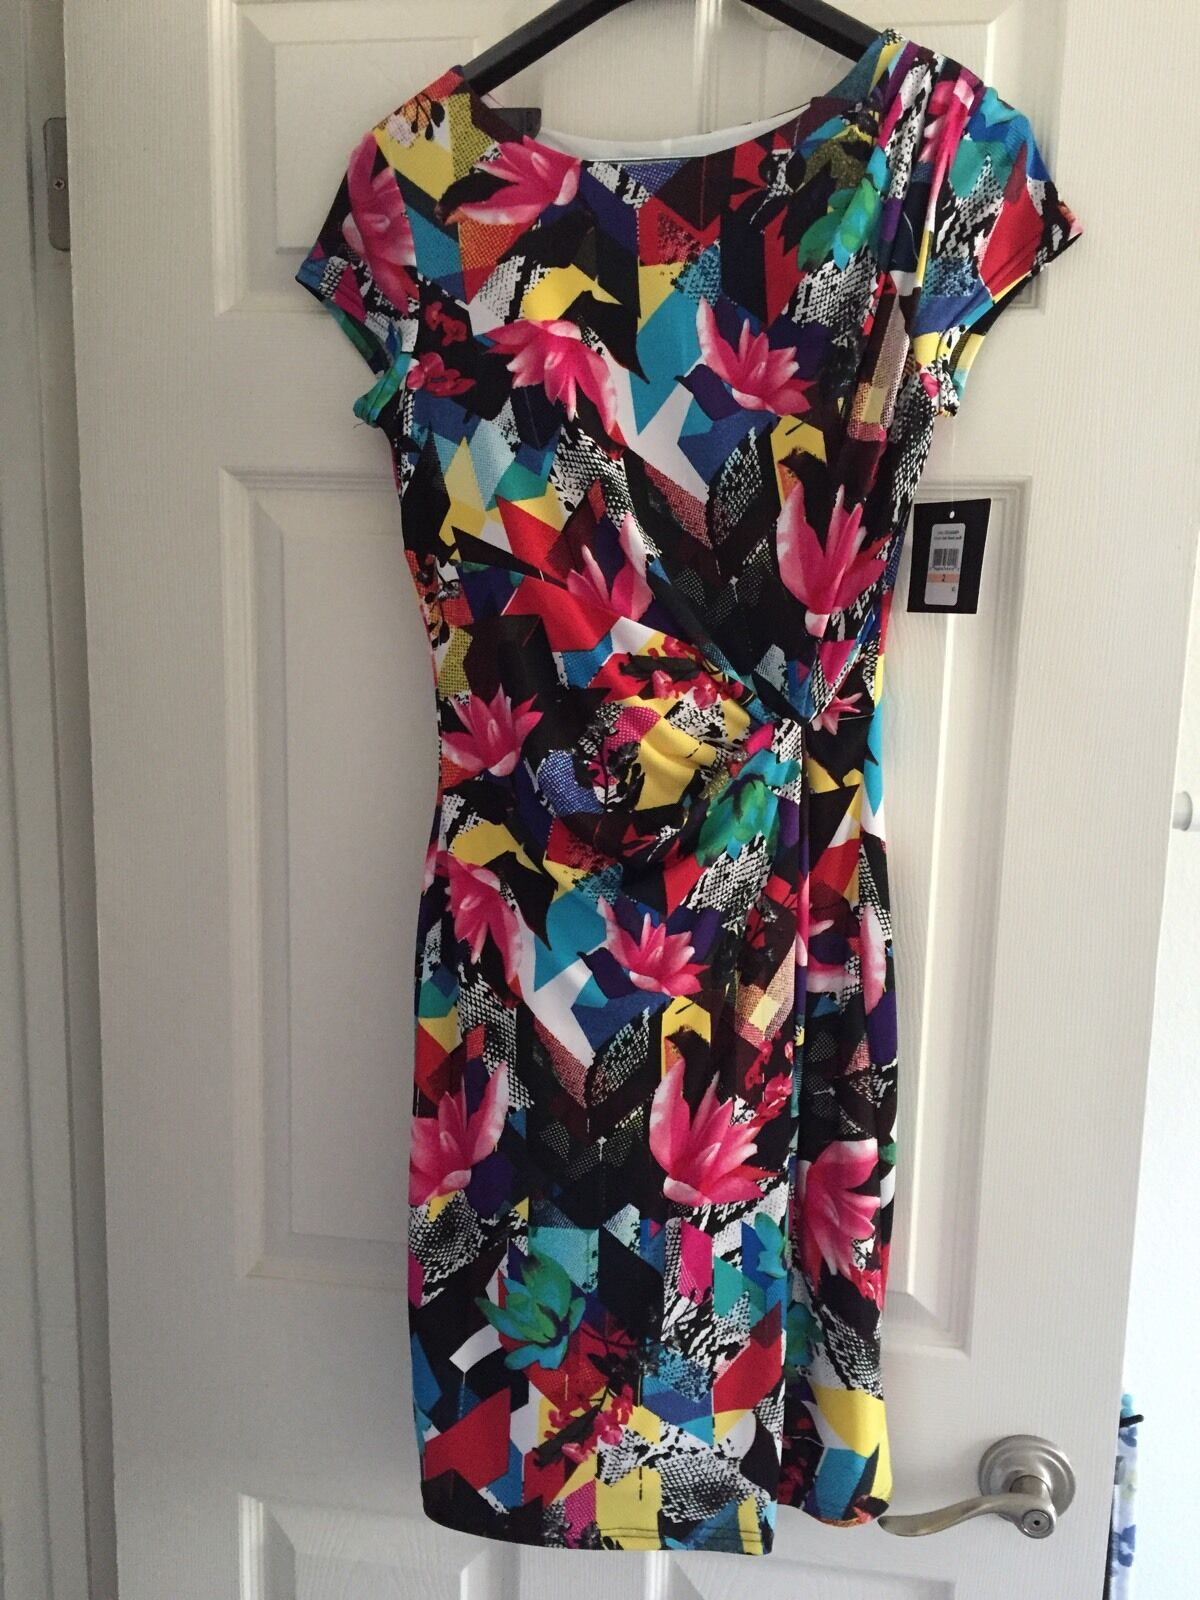 NWT Ellen Tracy Floral Cap Sleeve Sheath Dress sz 2 MultiFarbe Lined MSRP